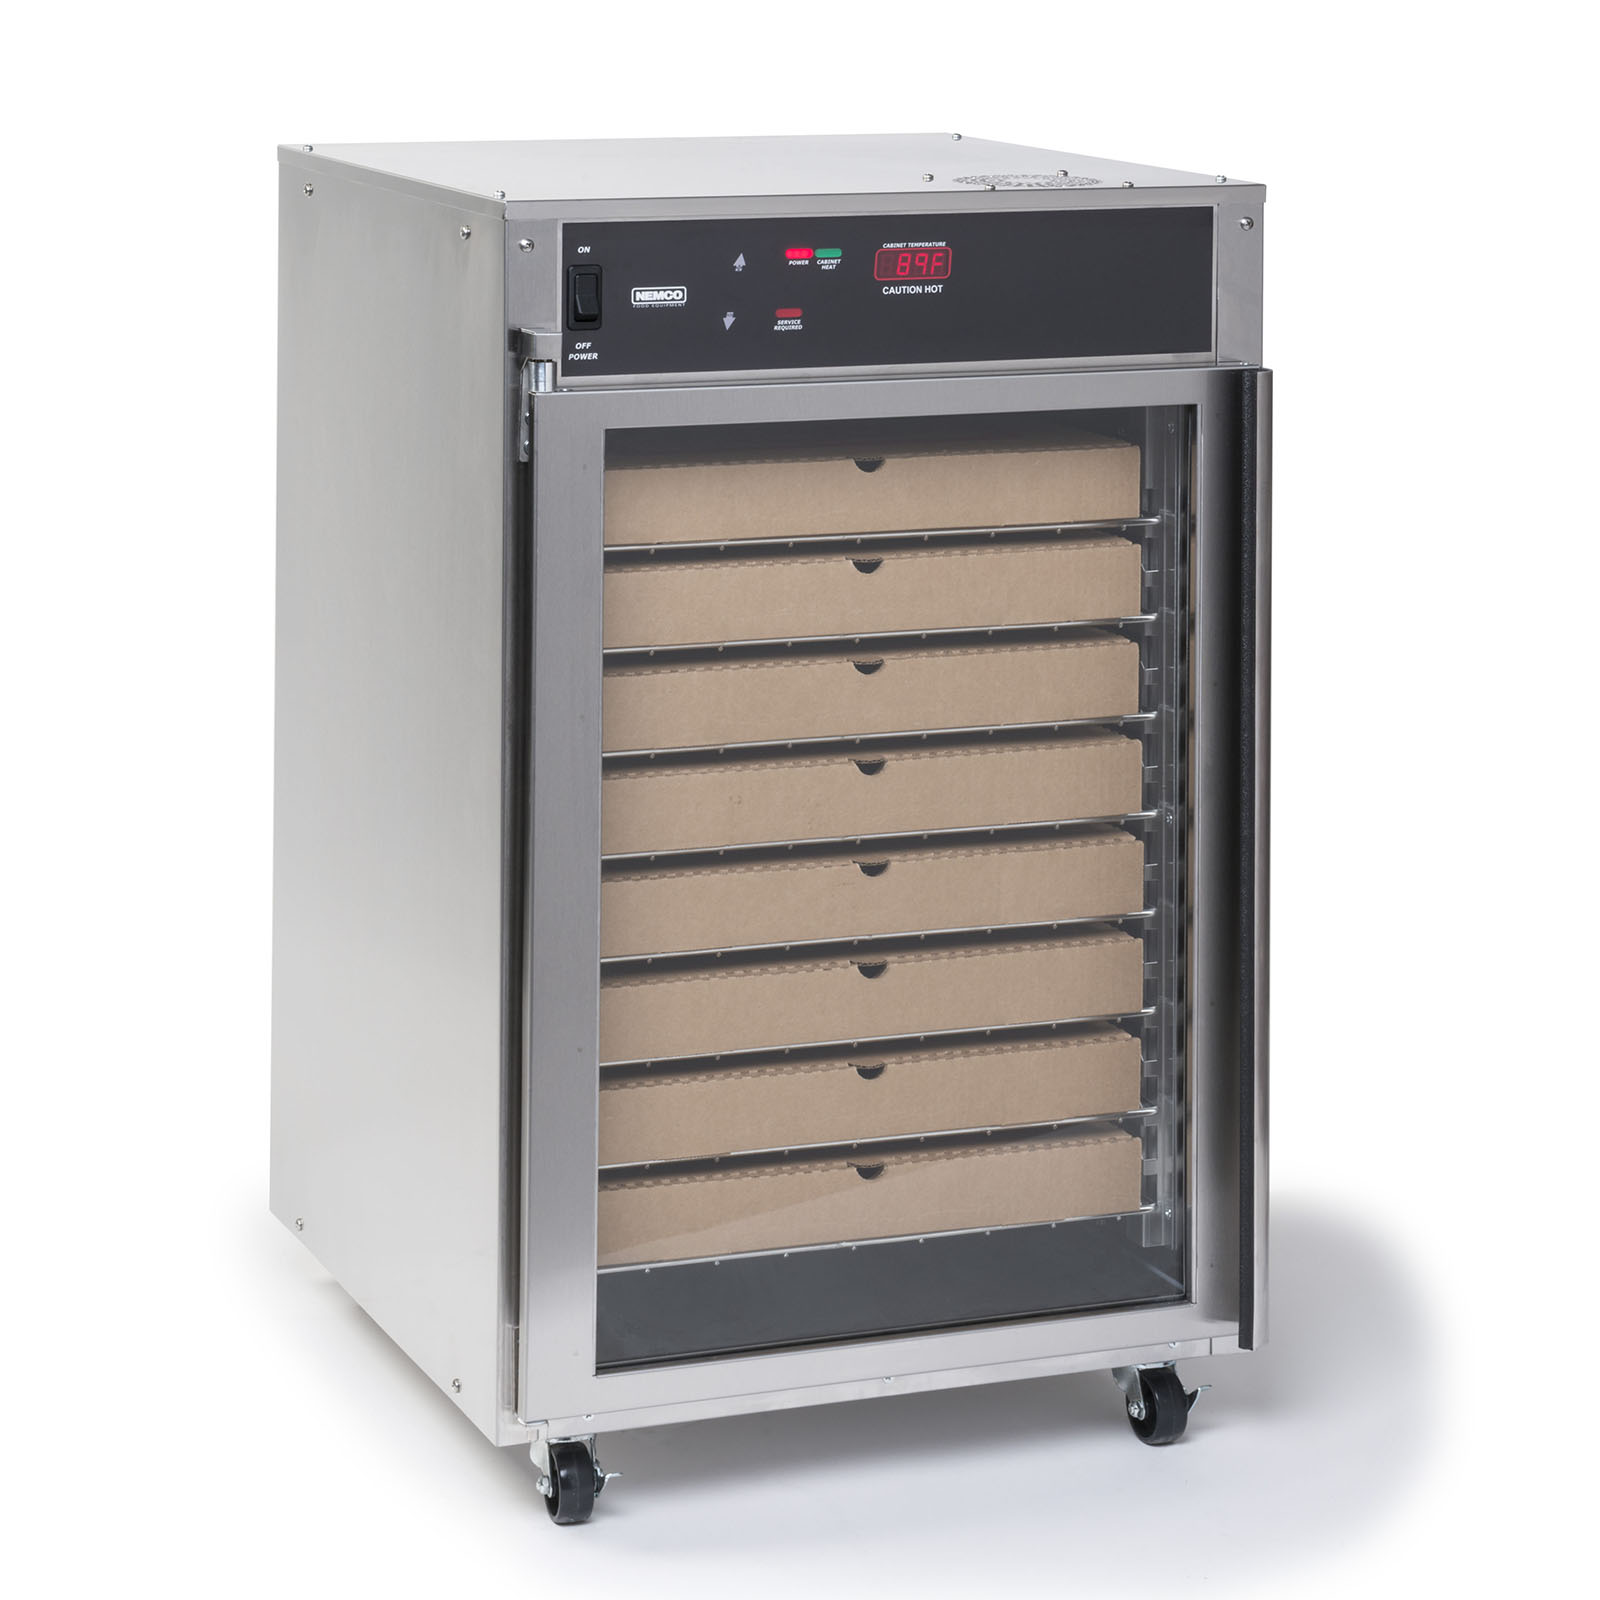 Nemco Food Equipment 6410 heated cabinet, mobile, pizza